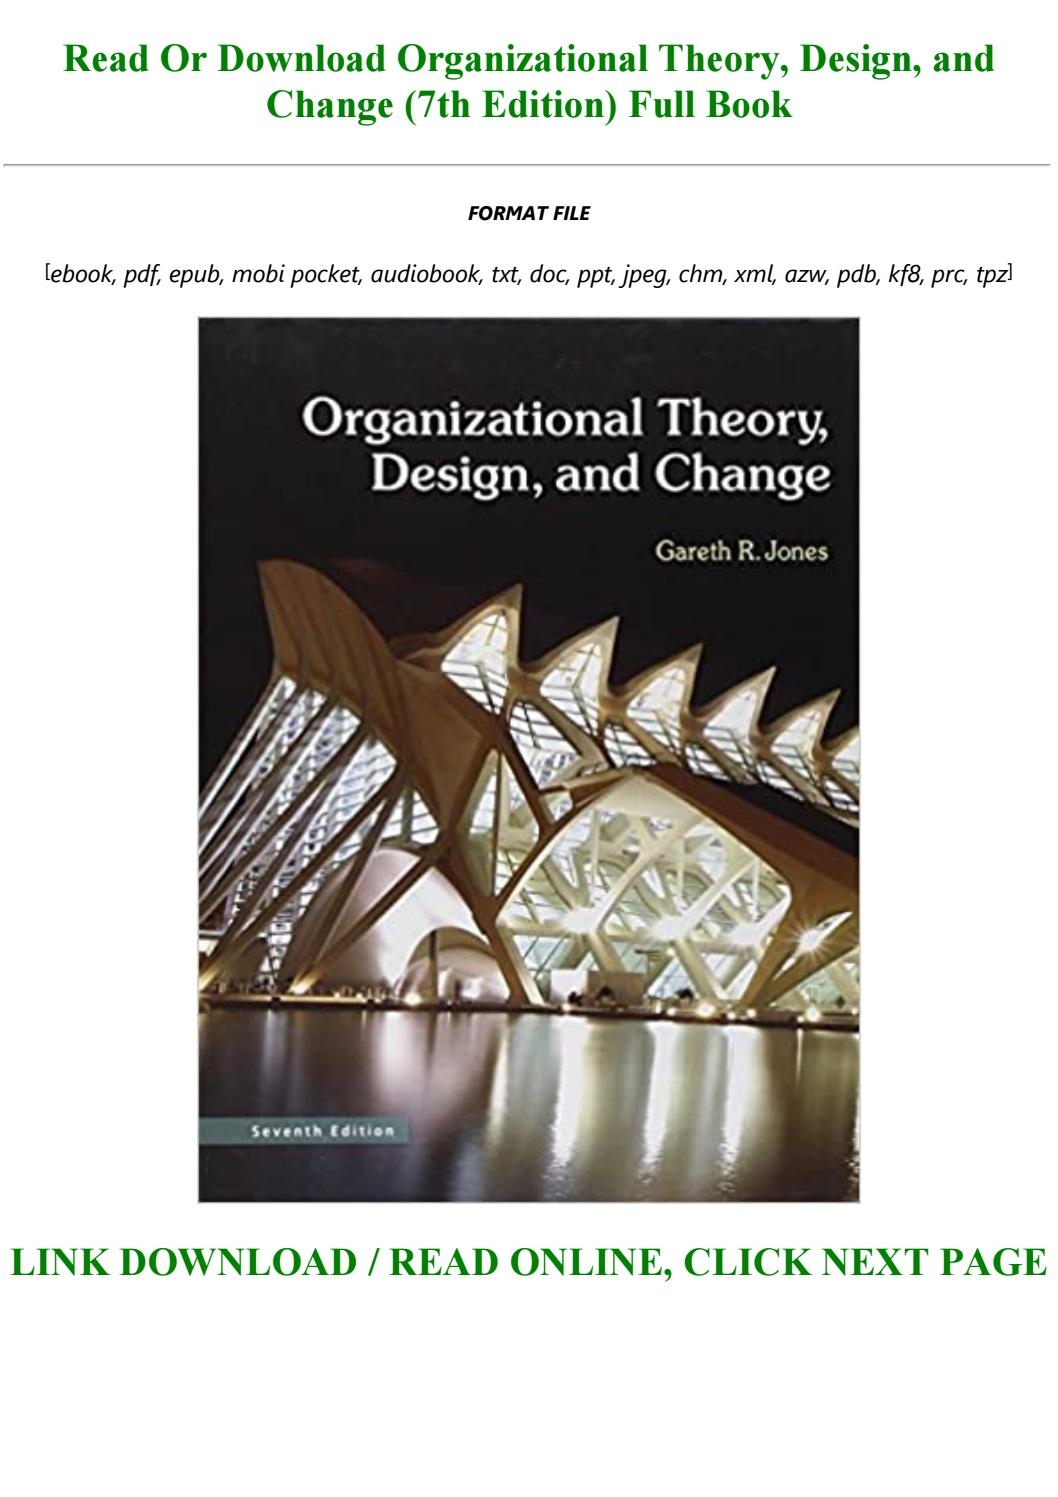 Download Read Organizational Theory Design And Change 7th Edition Full Pdf By Katrineziemann1o1 Issuu